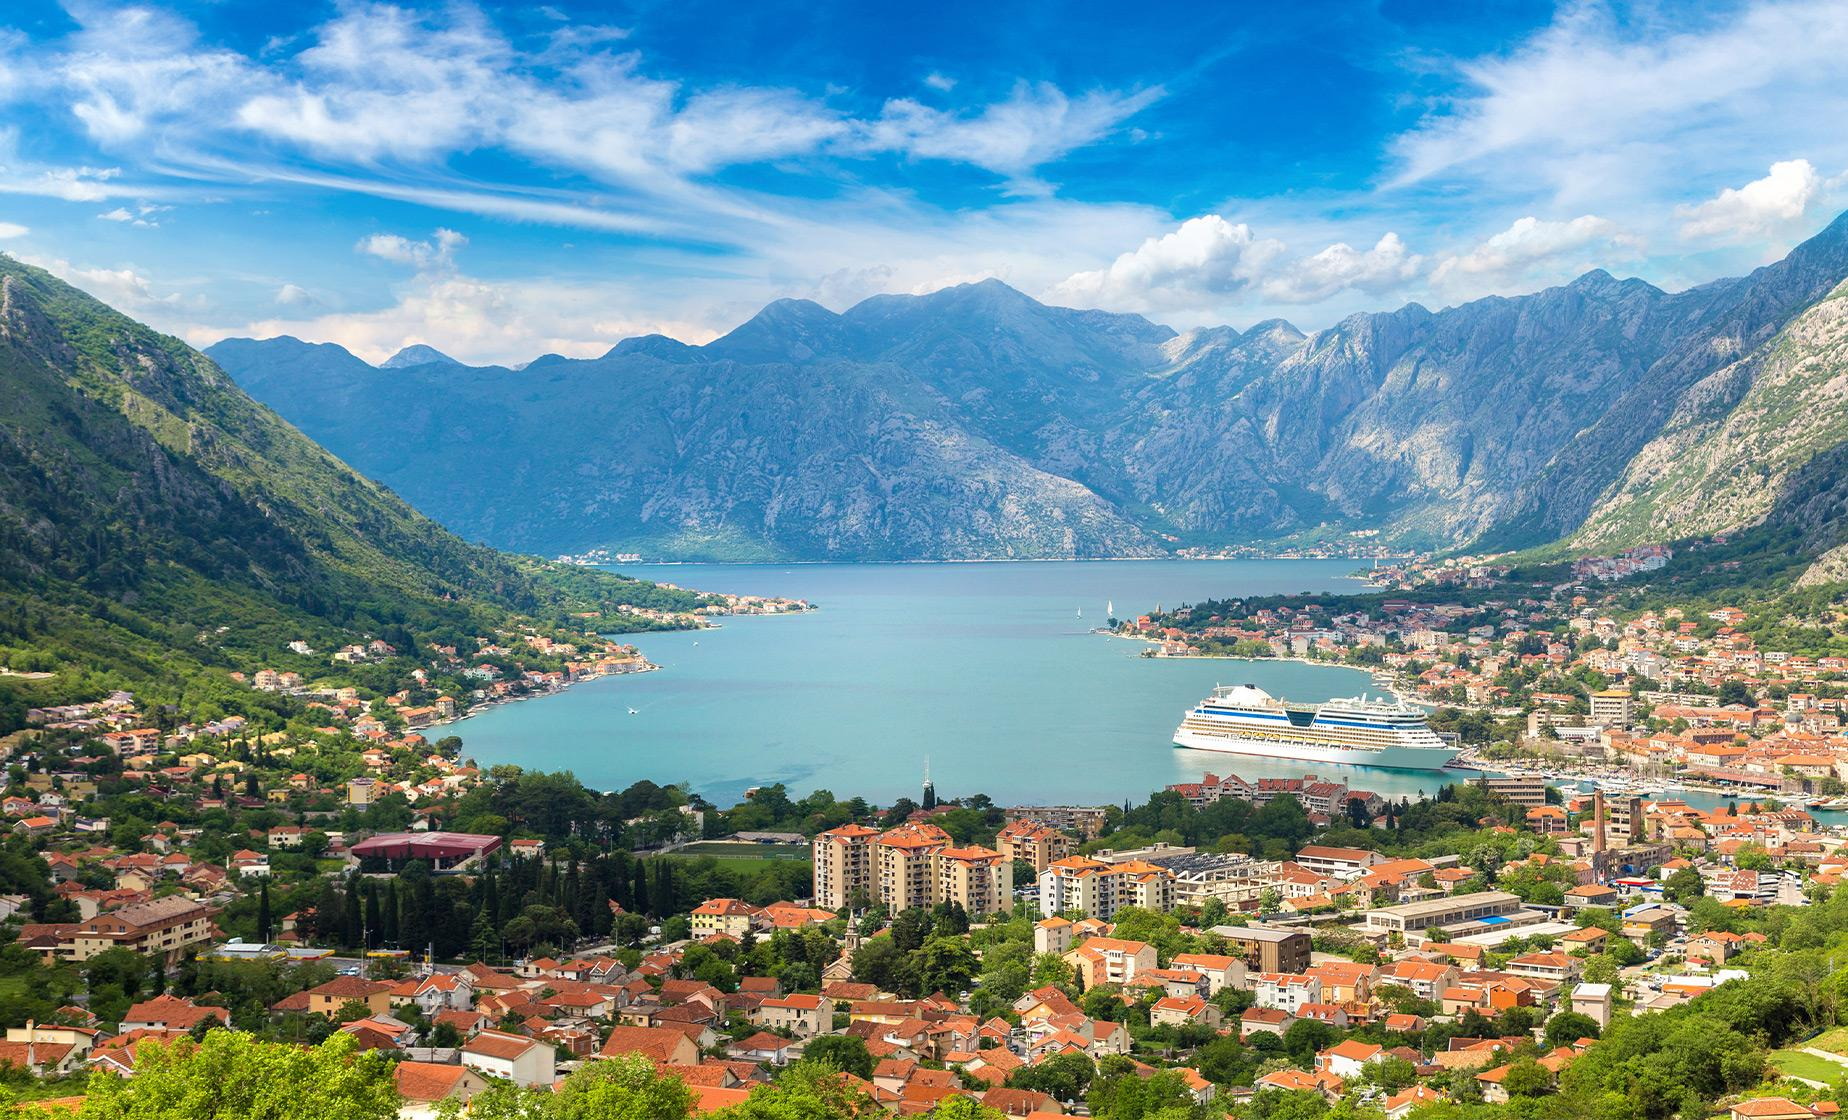 Private Montenegro Highlights Tour from Kotor (Njegusi, Cetinje)